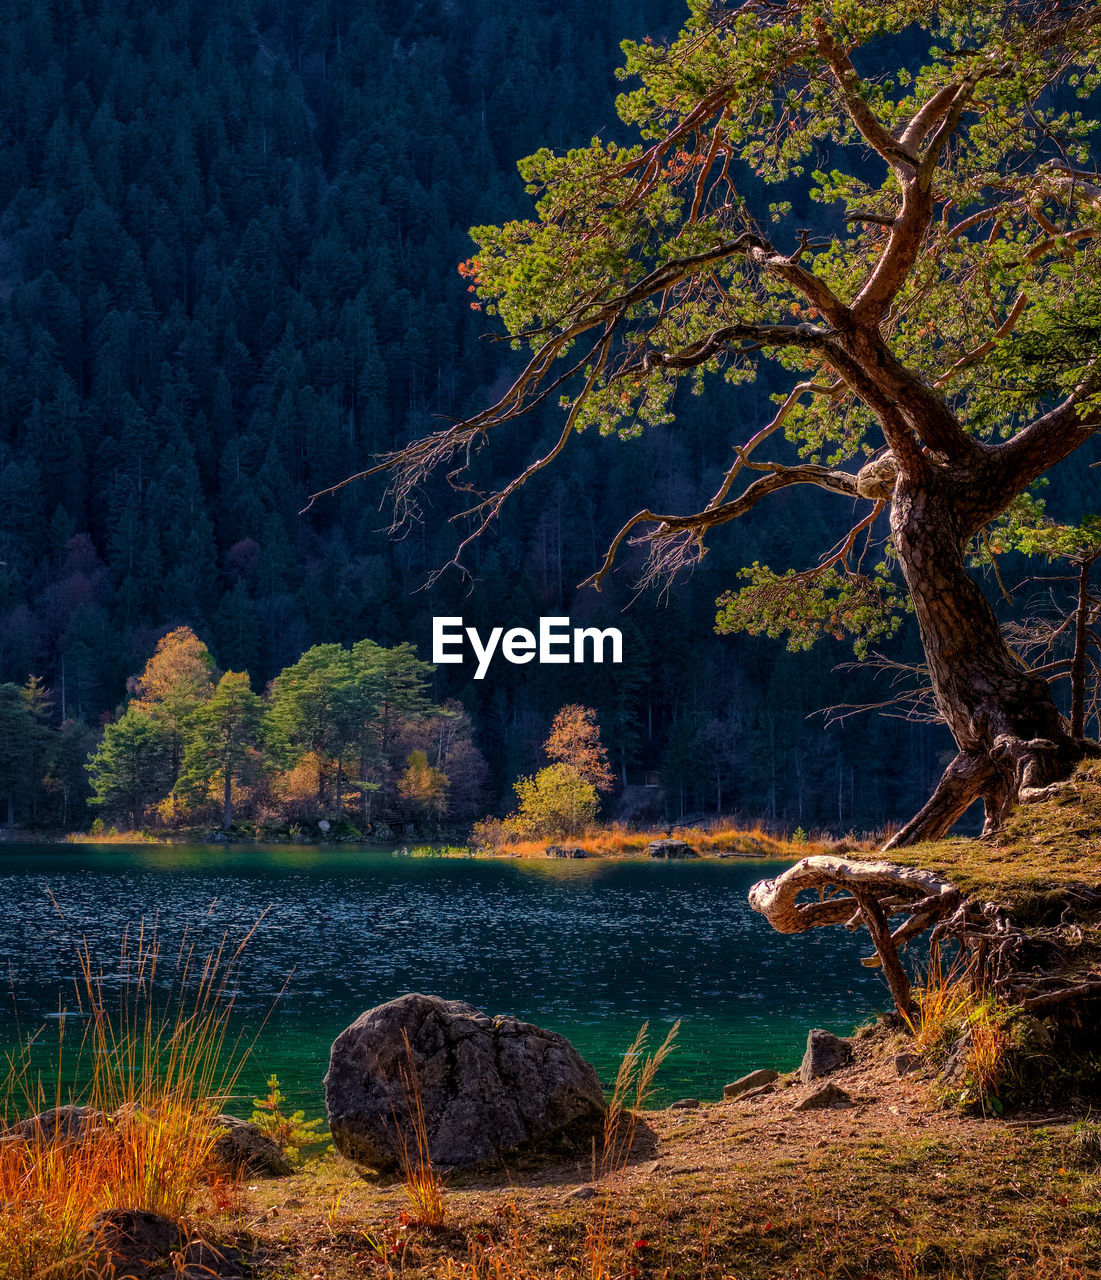 tree, nature, forest, no people, branch, outdoors, lake, tree trunk, water, scenics, beauty in nature, day, landscape, mountain